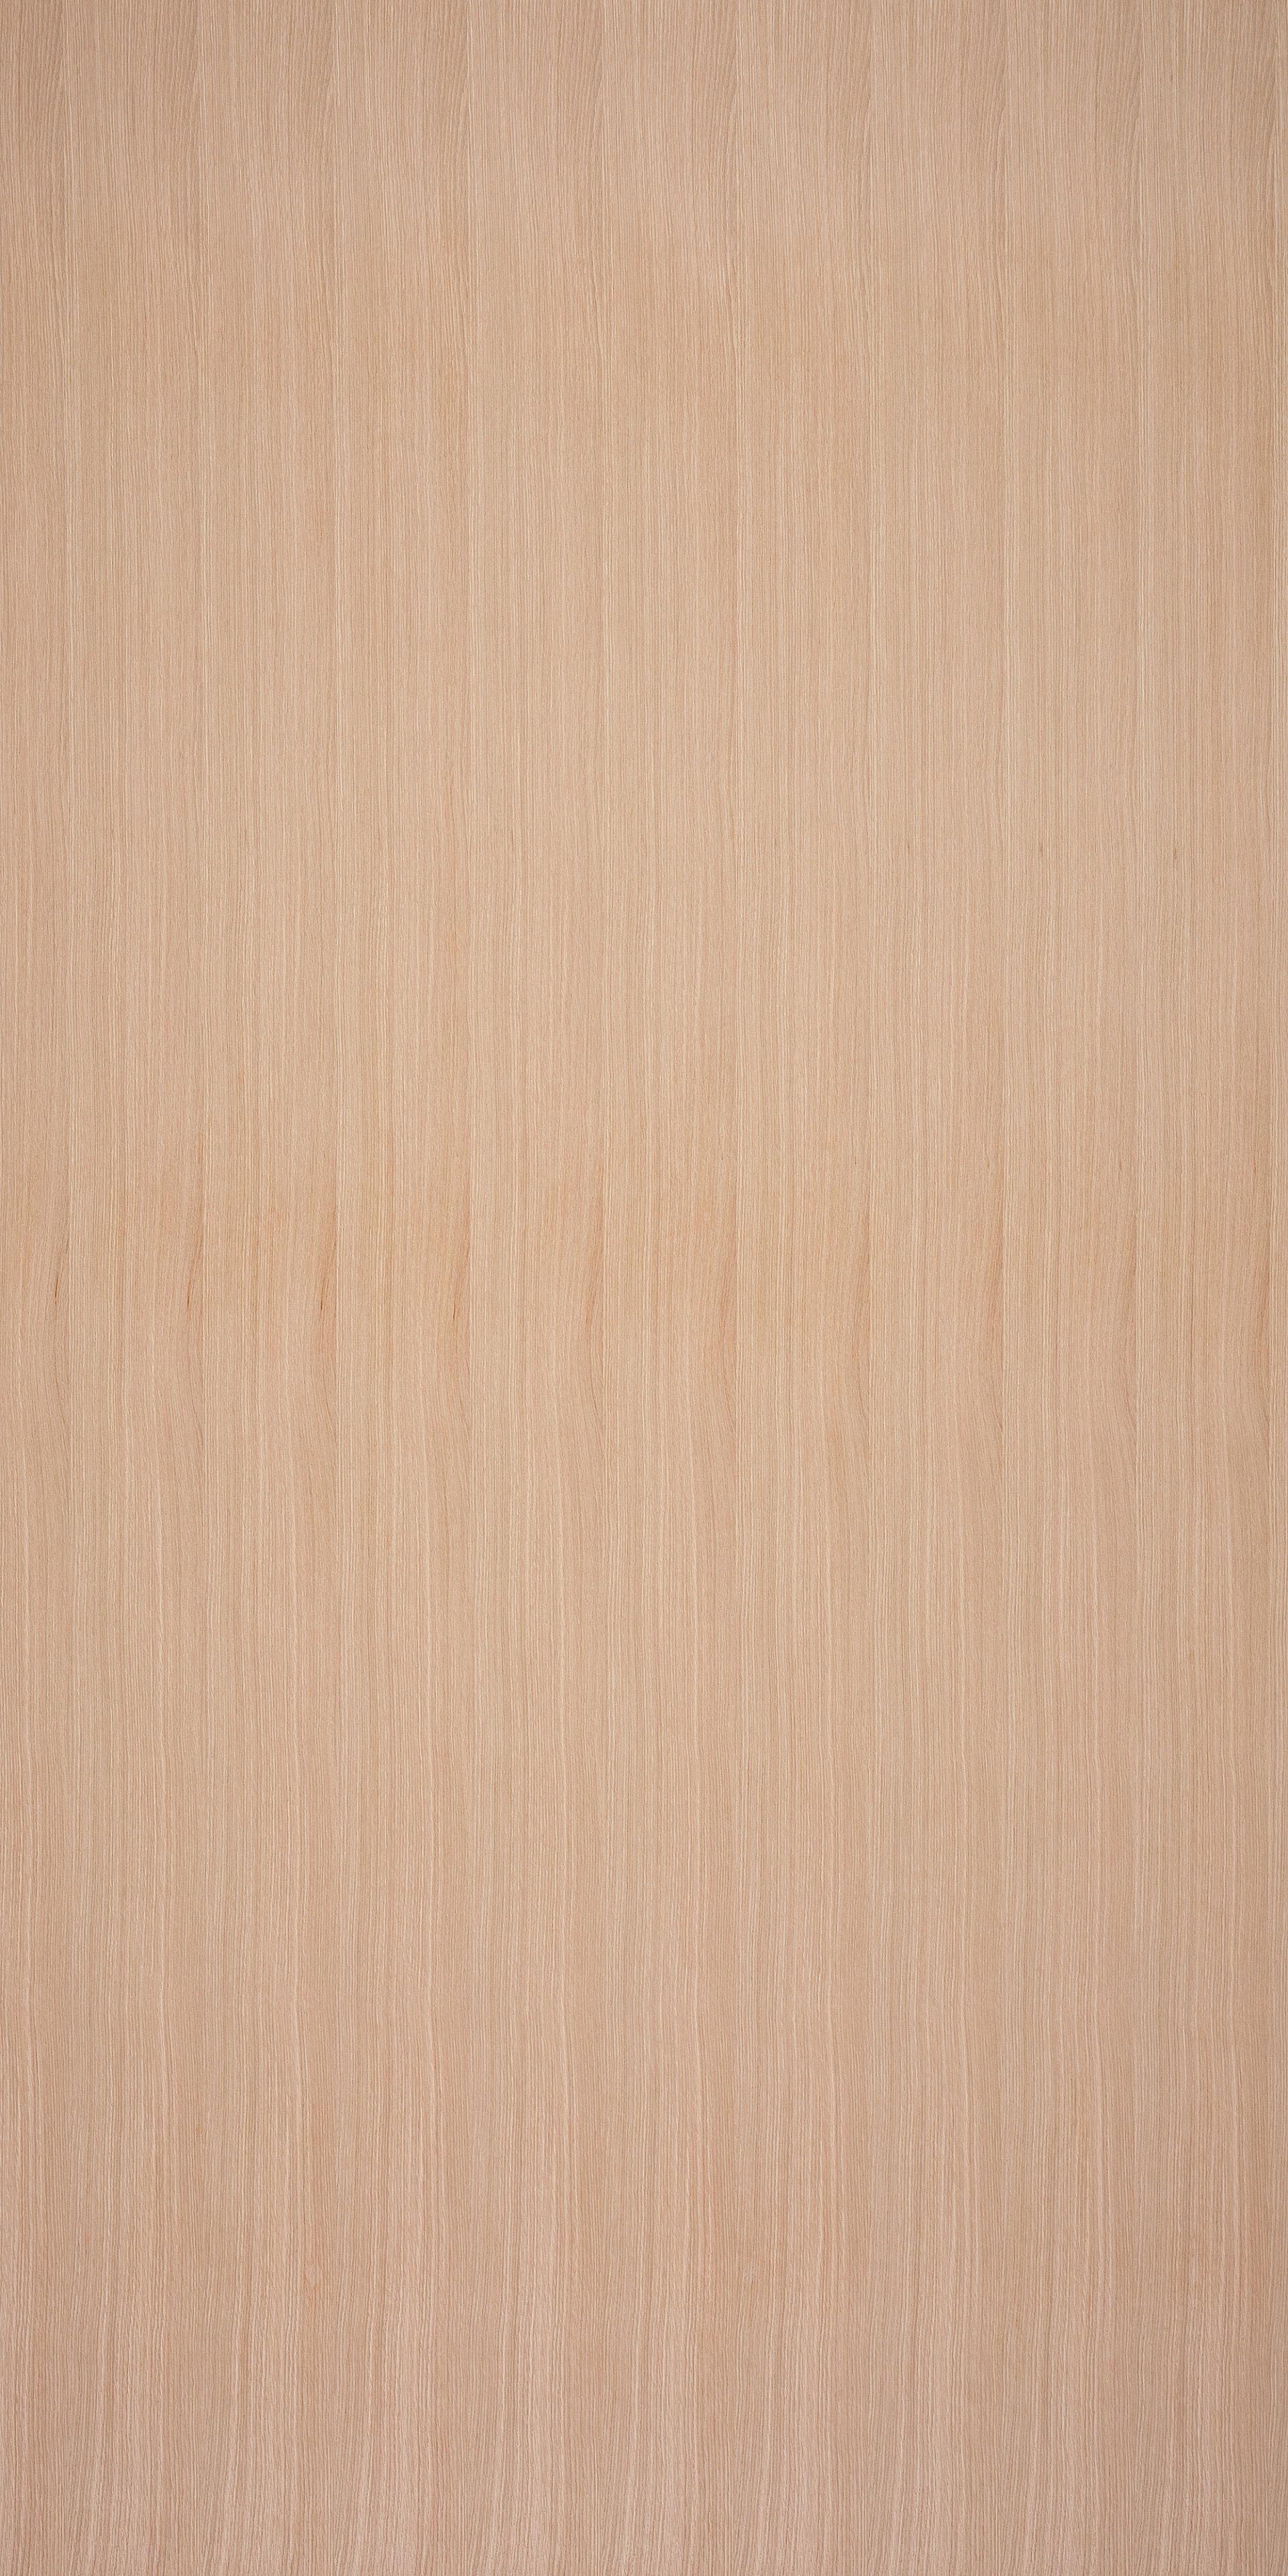 oak rift slipmatched 2440x1220